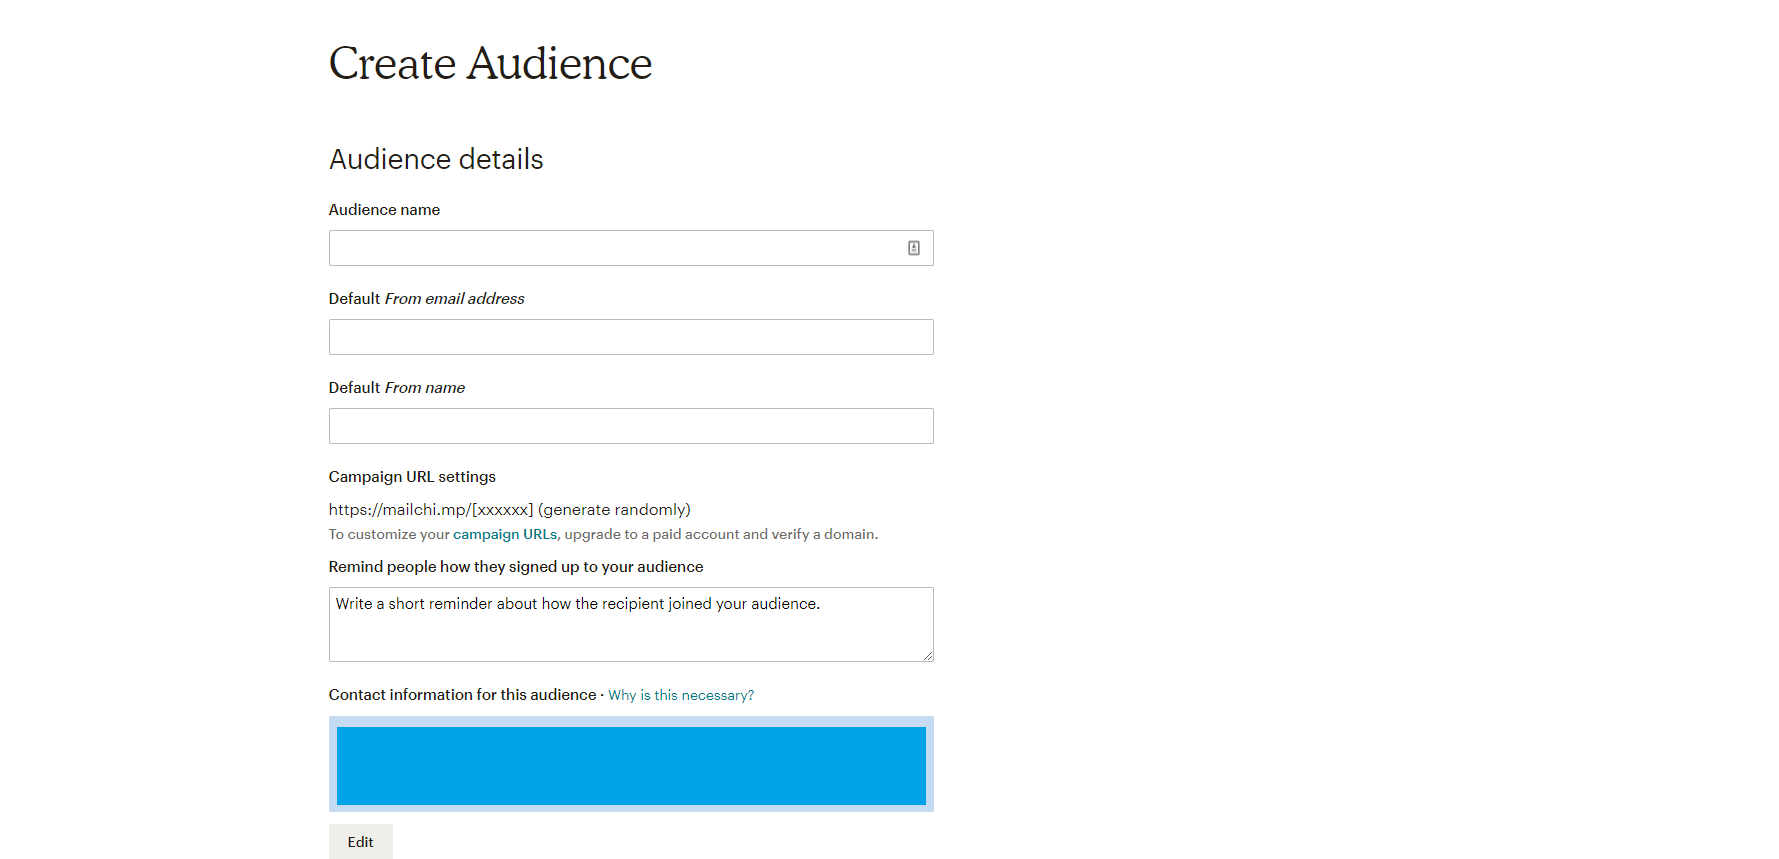 create_audience2.png